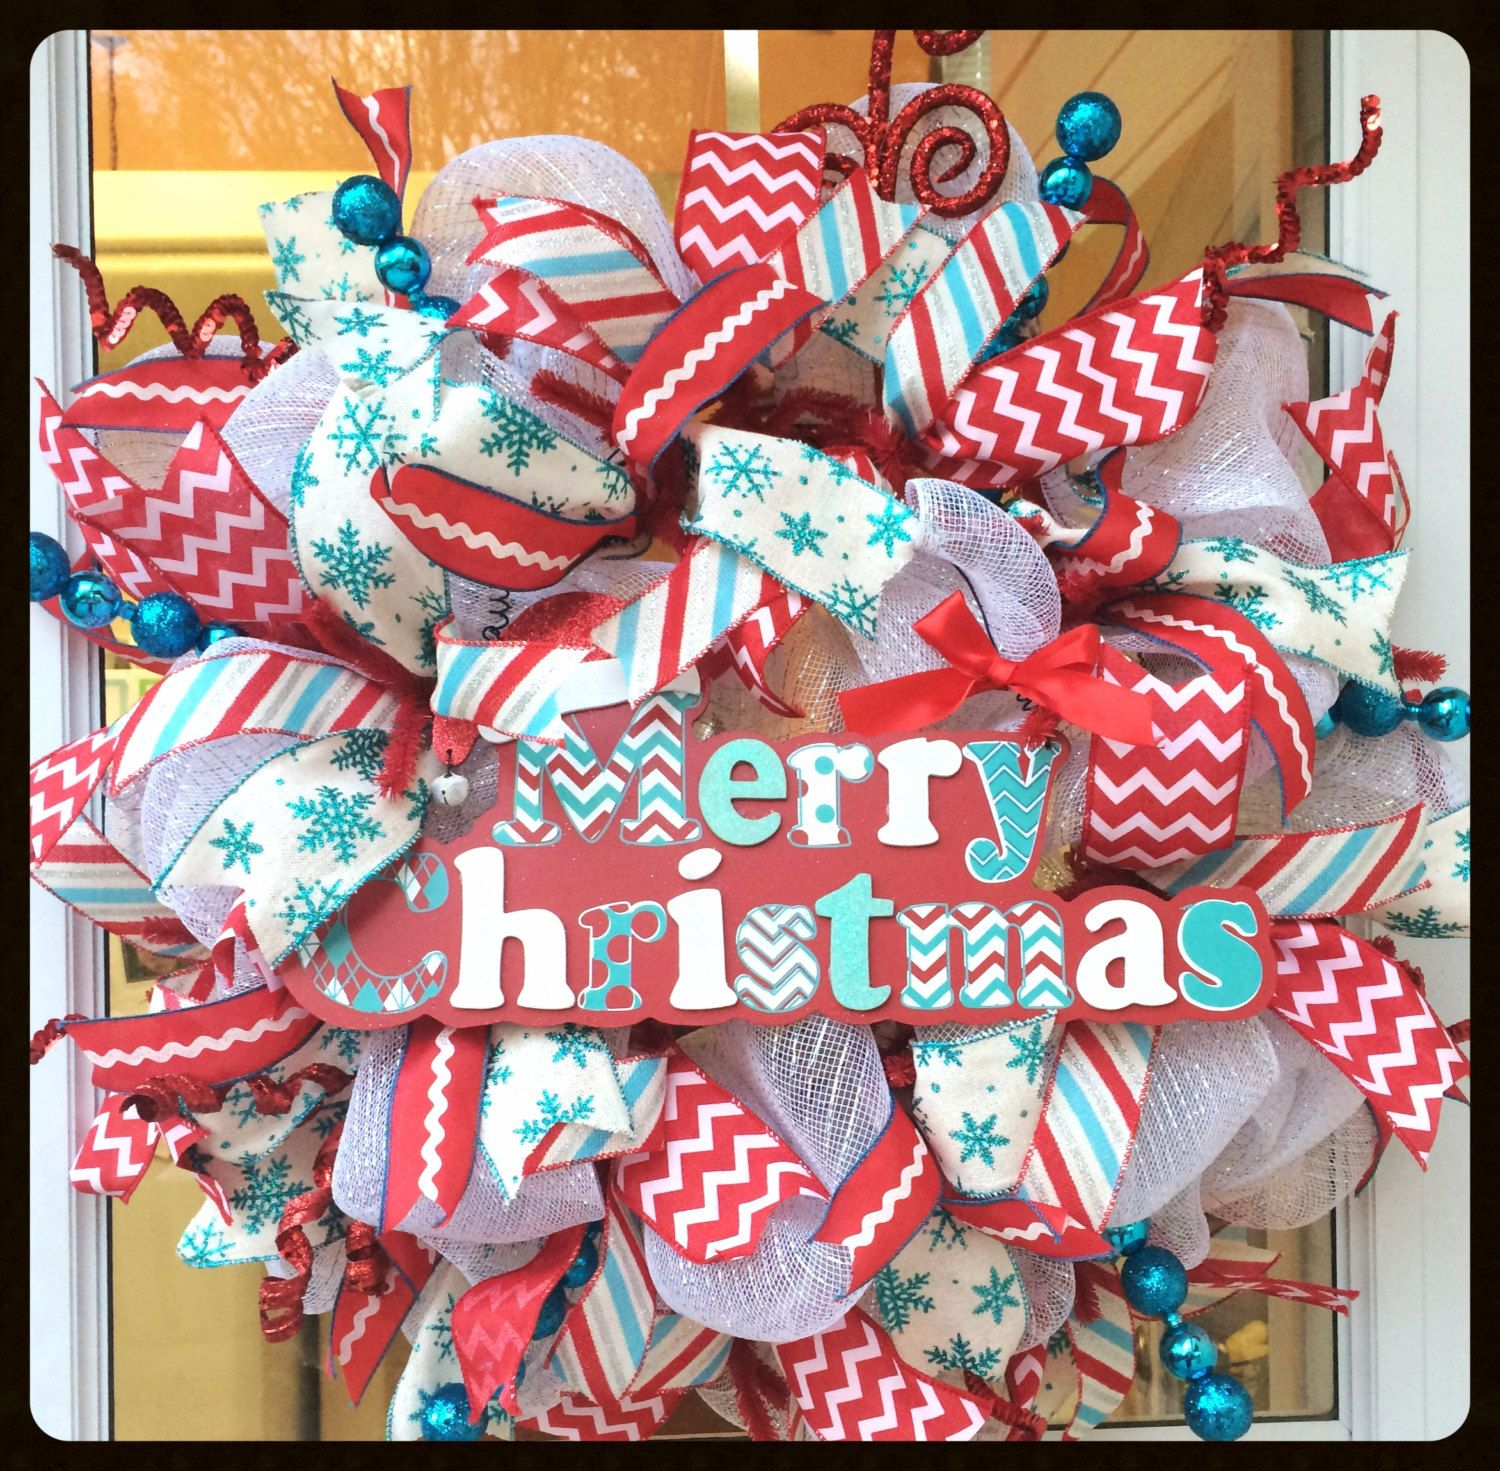 Red Turquoise Not Just For Holiday Decor: Extra Large Deluxe Red & Turquoise Merry Christmas Wreath